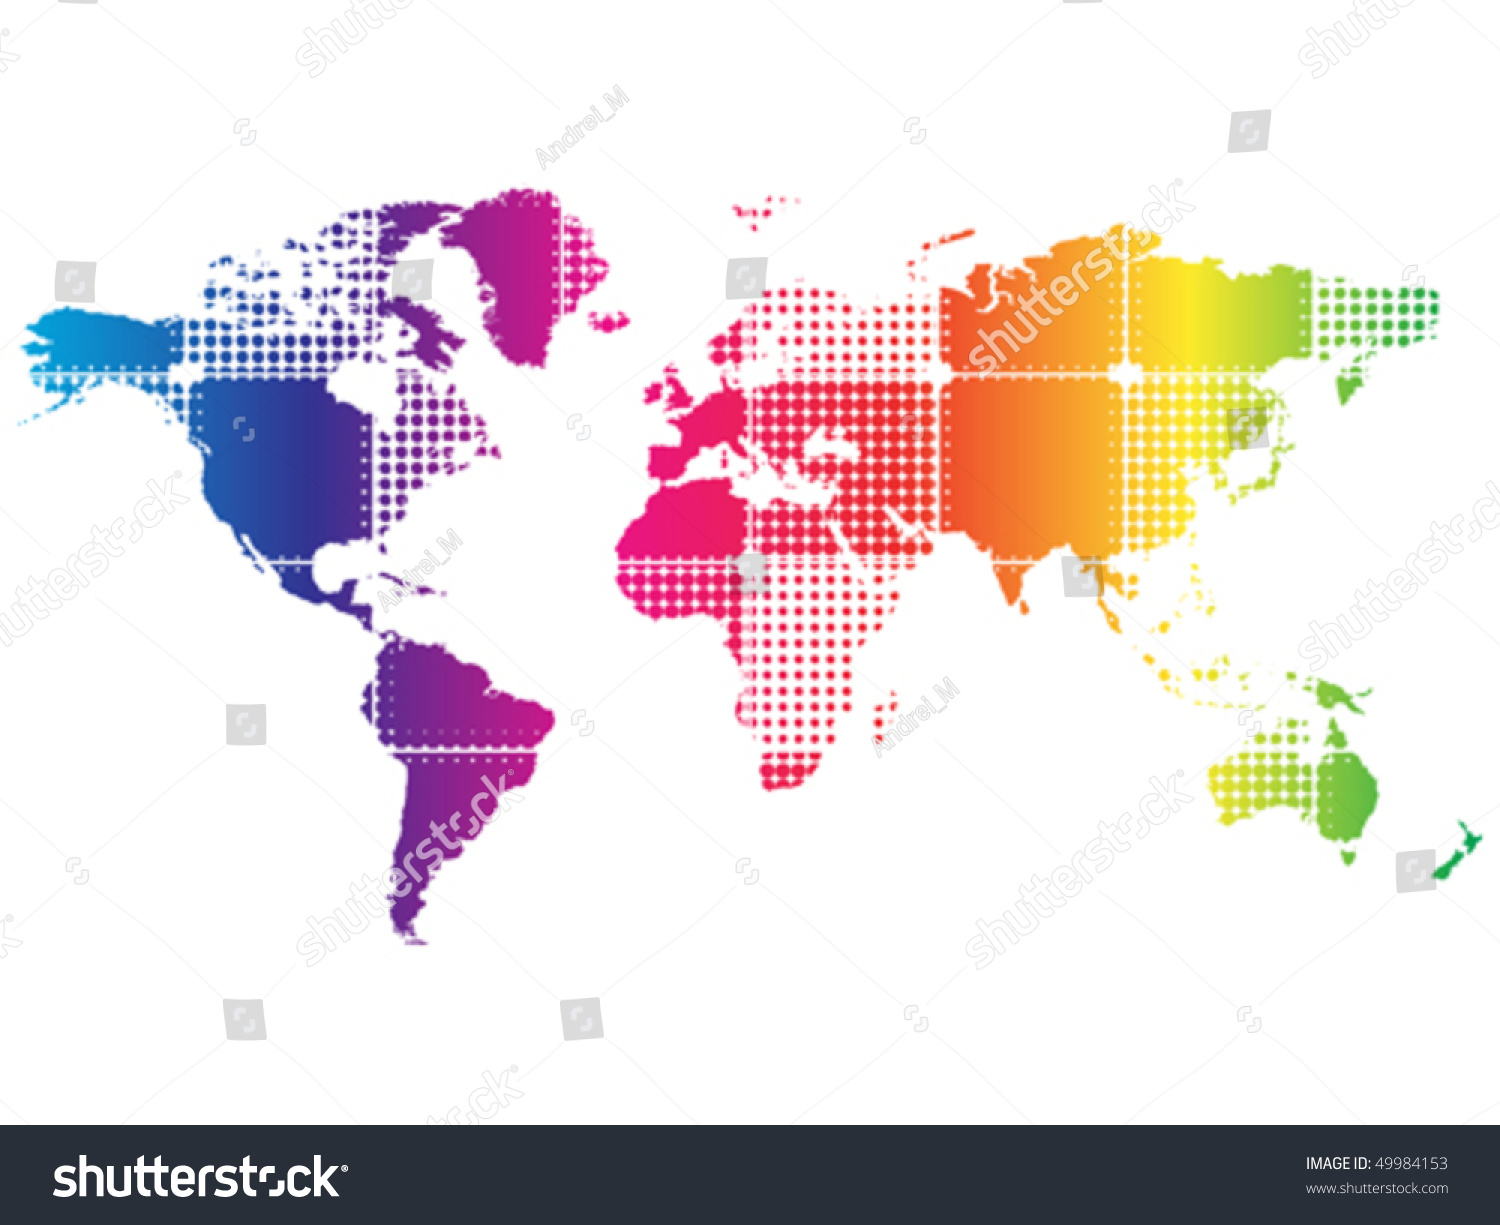 Hd wallpapers abstract world map vector get free high quality hd wallpapers abstract world map vector gumiabroncs Gallery